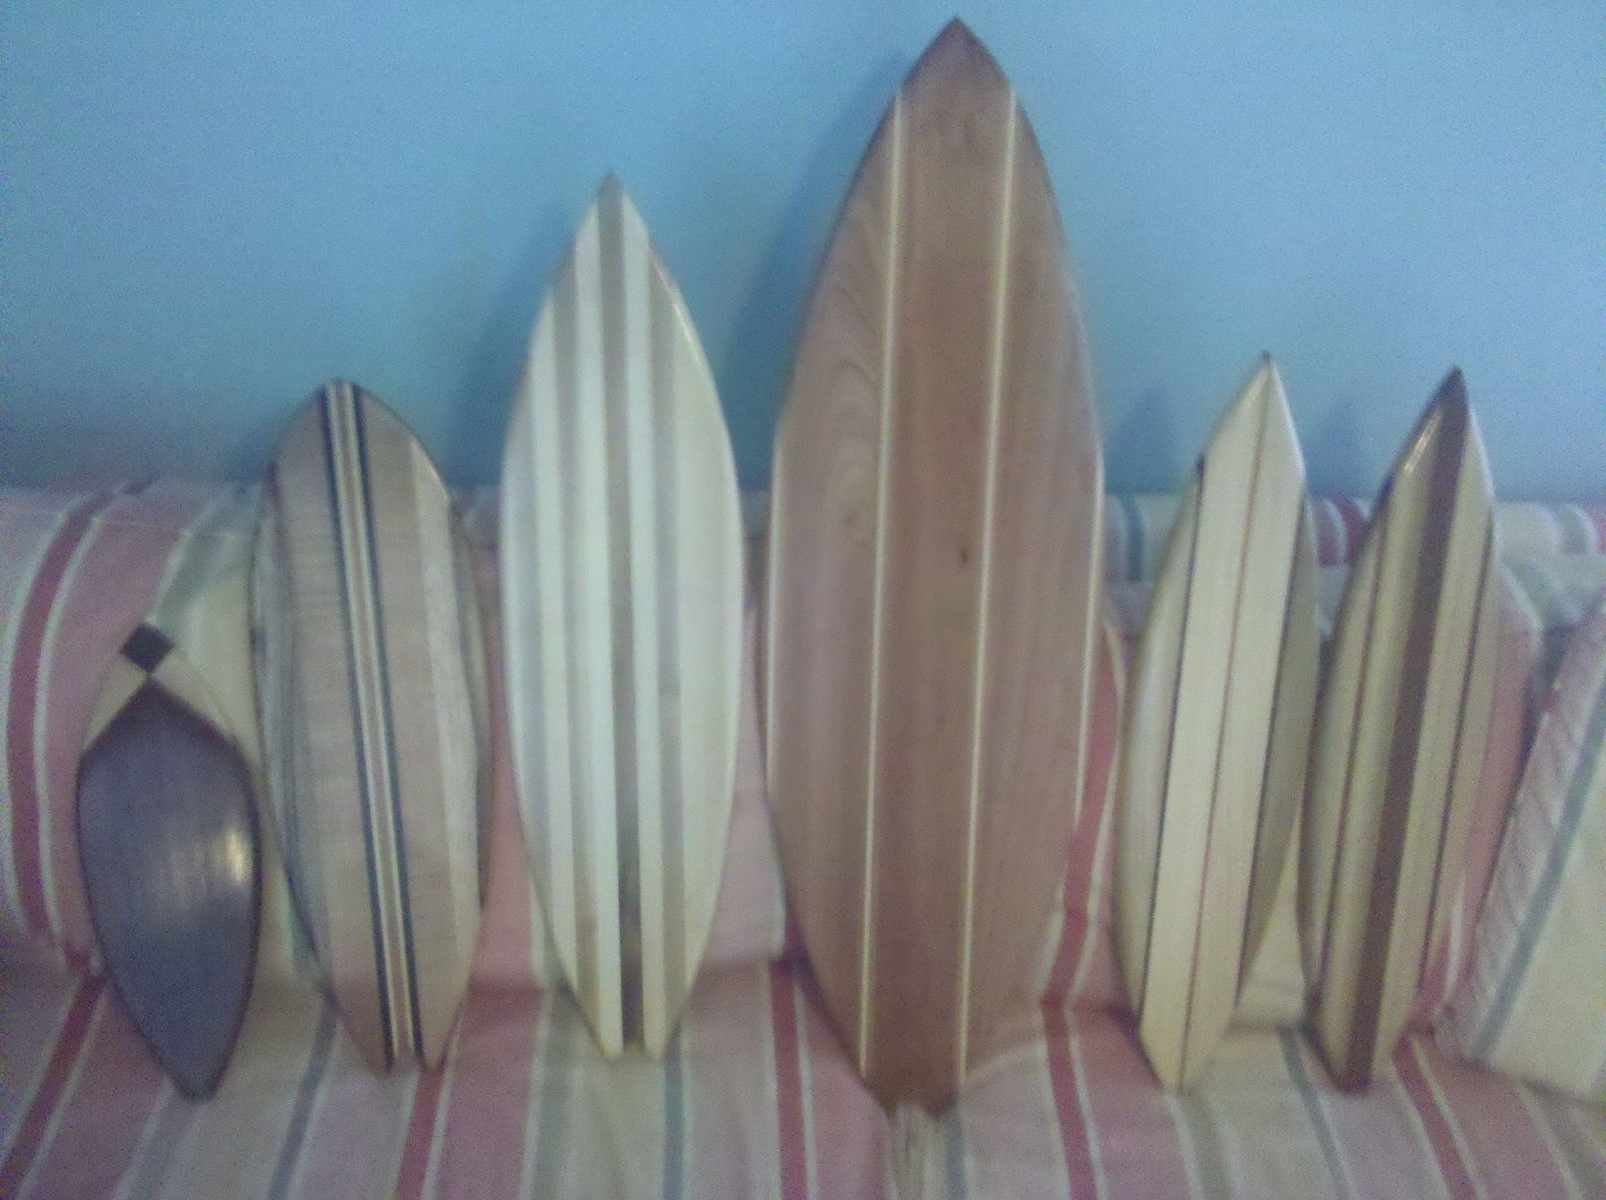 Custom Made Medium Surfboard Wall Artgood Surf Skateboards For Well Liked Decorative Surfboard Wall Art (View 4 of 15)